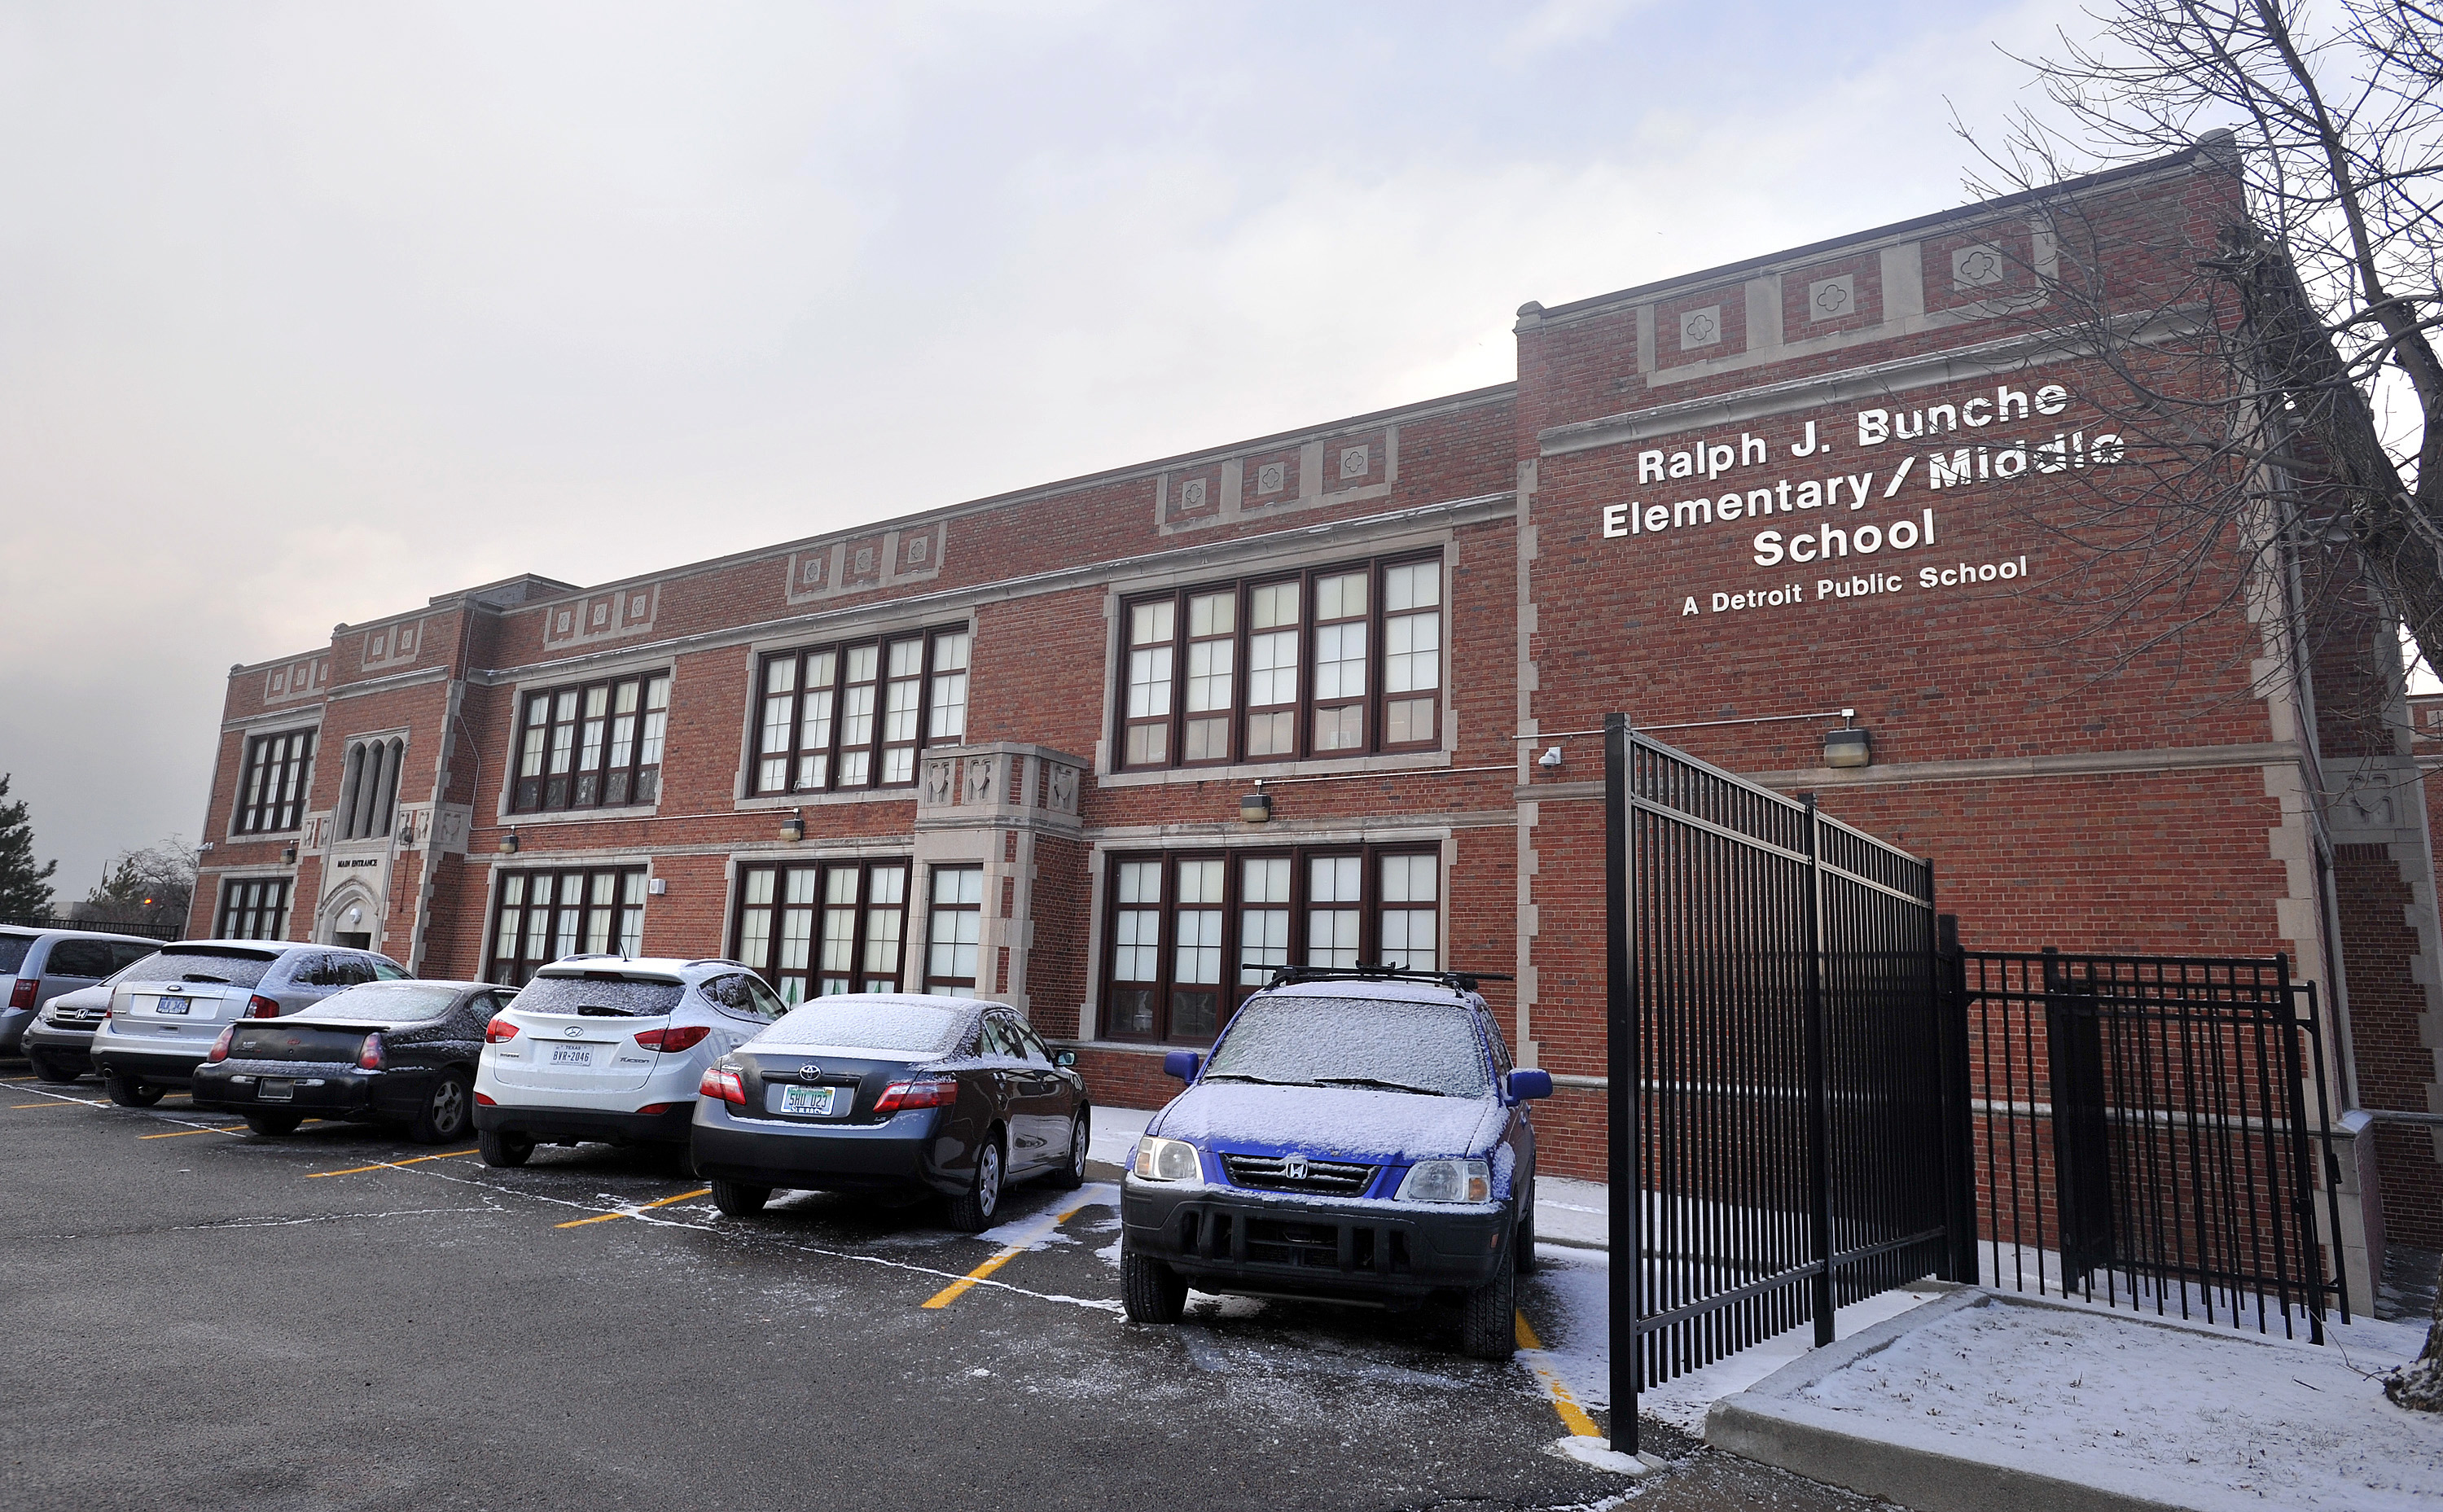 Detroit Schools Fight for Market Share With Kids as Commodities